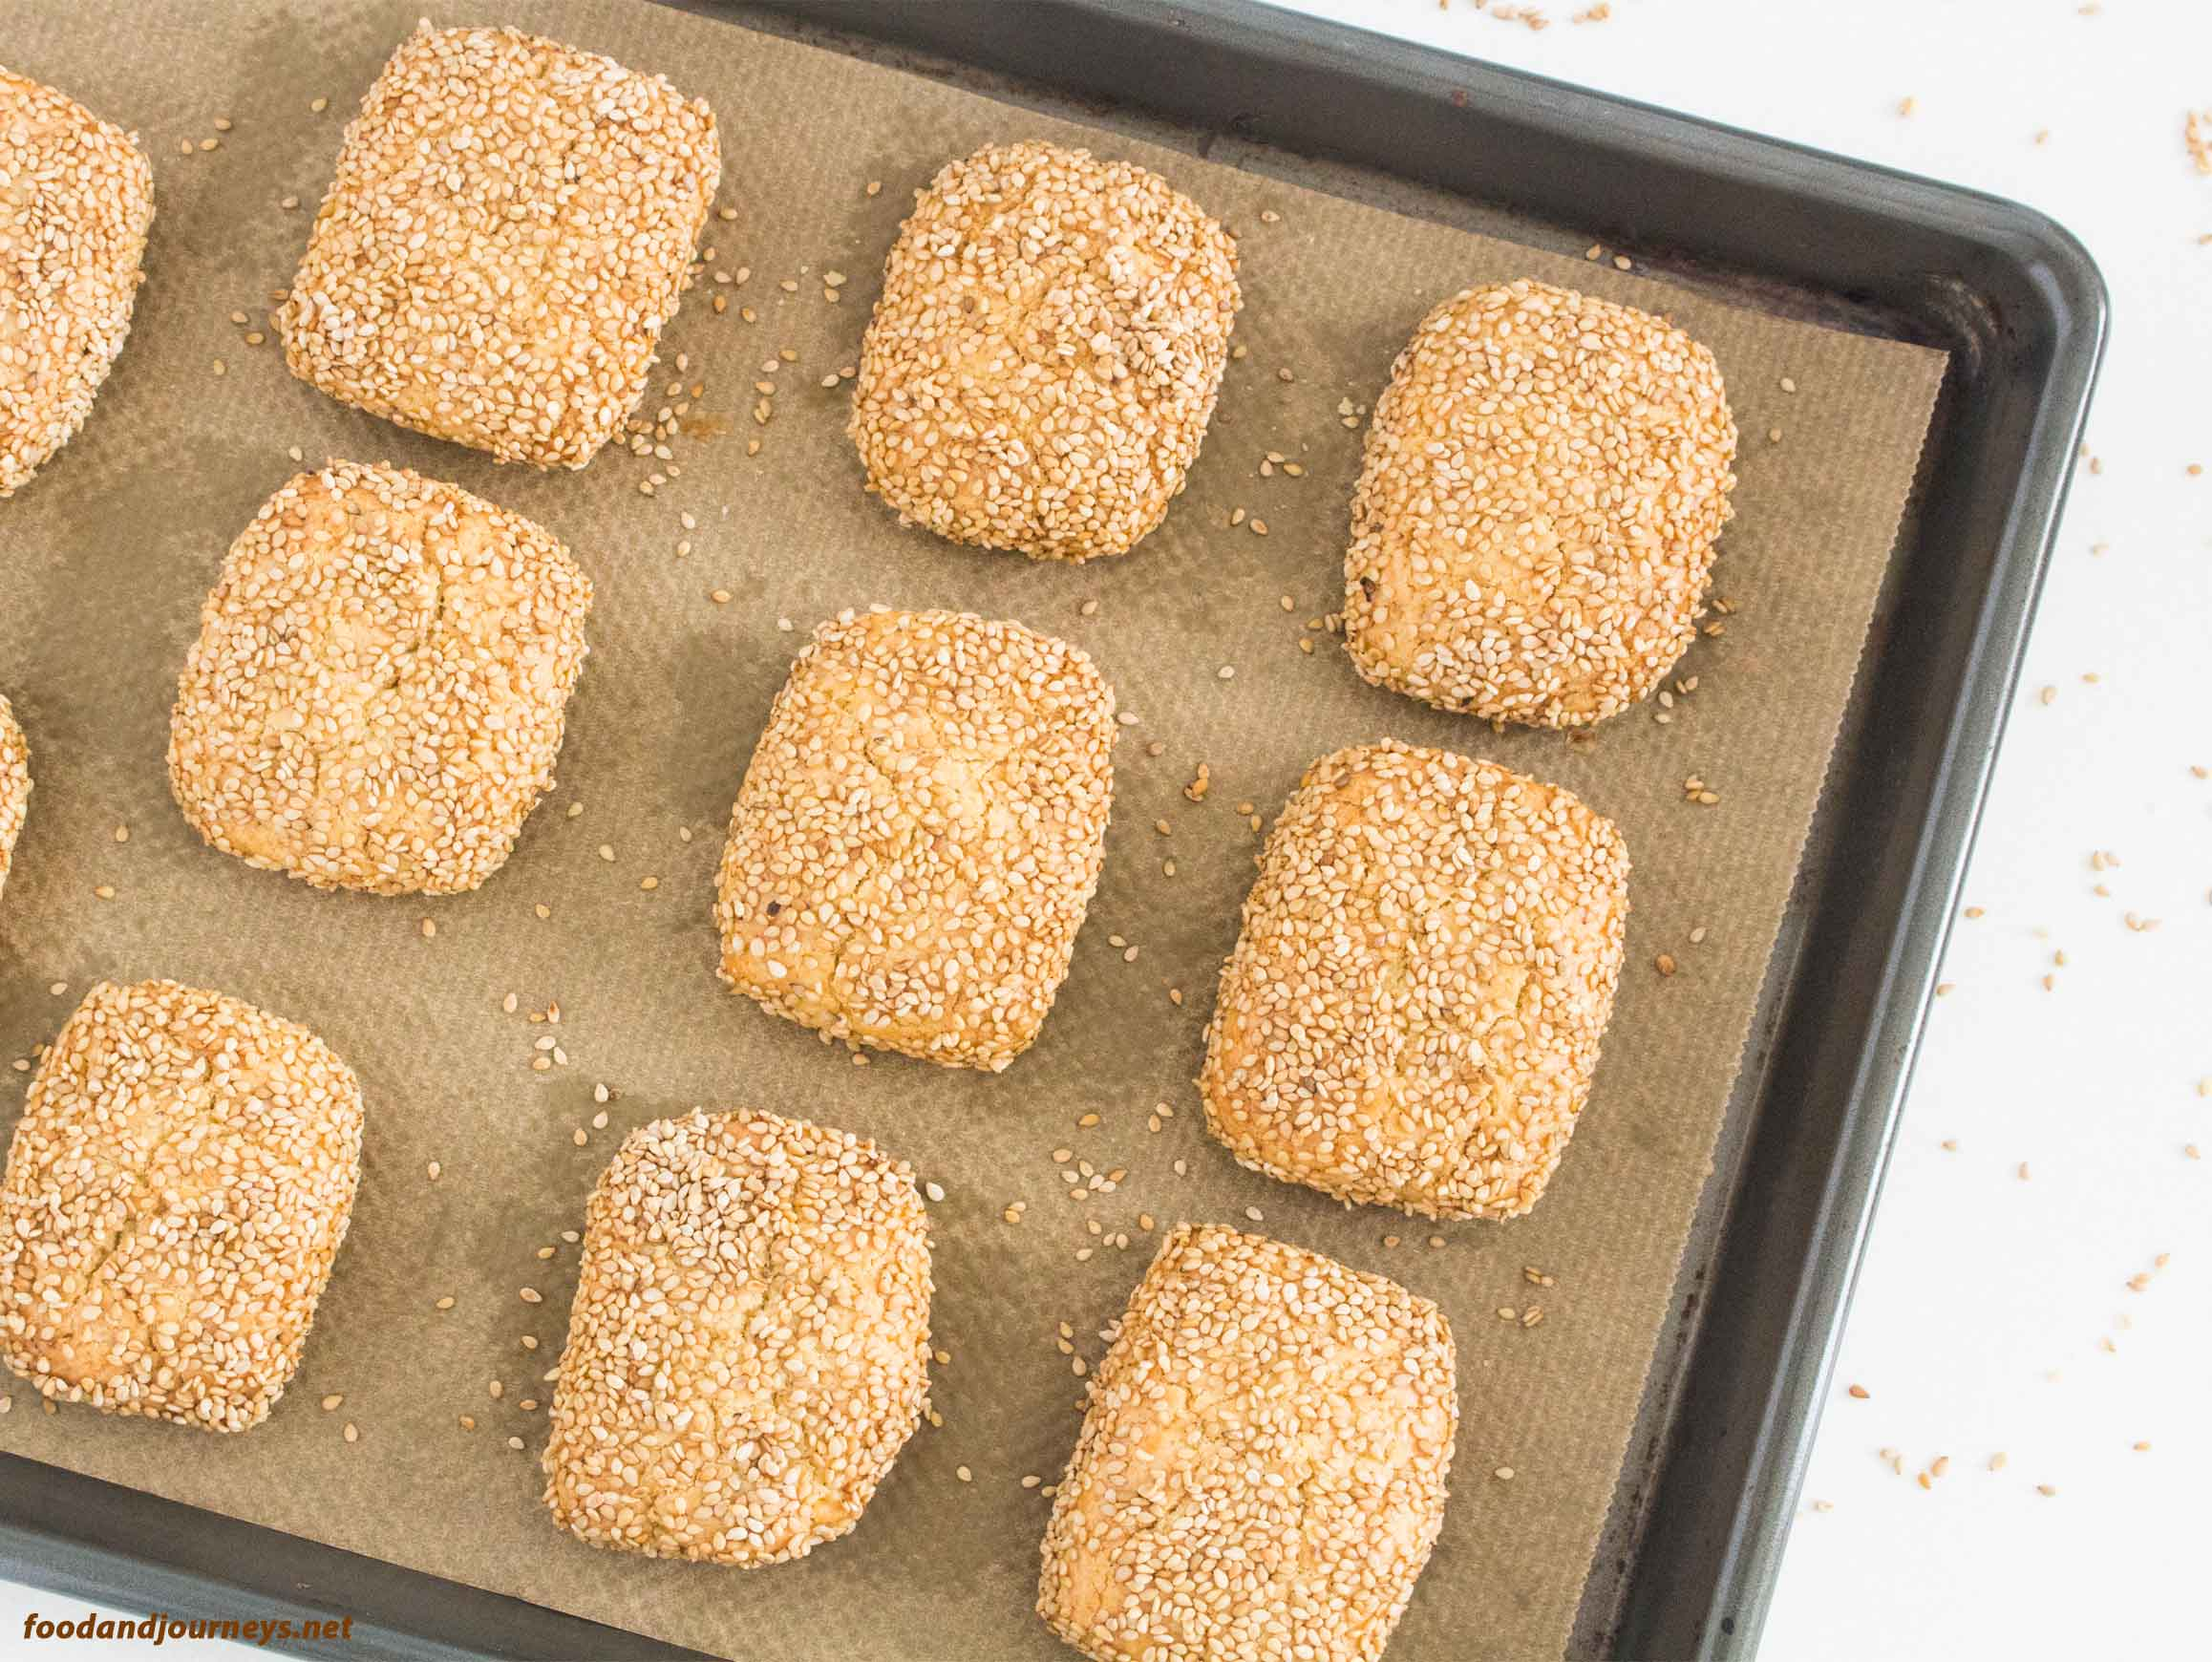 Overhead image of Sicilian Sesame Seed Cookies on a baking tray|foodandjourneys.net